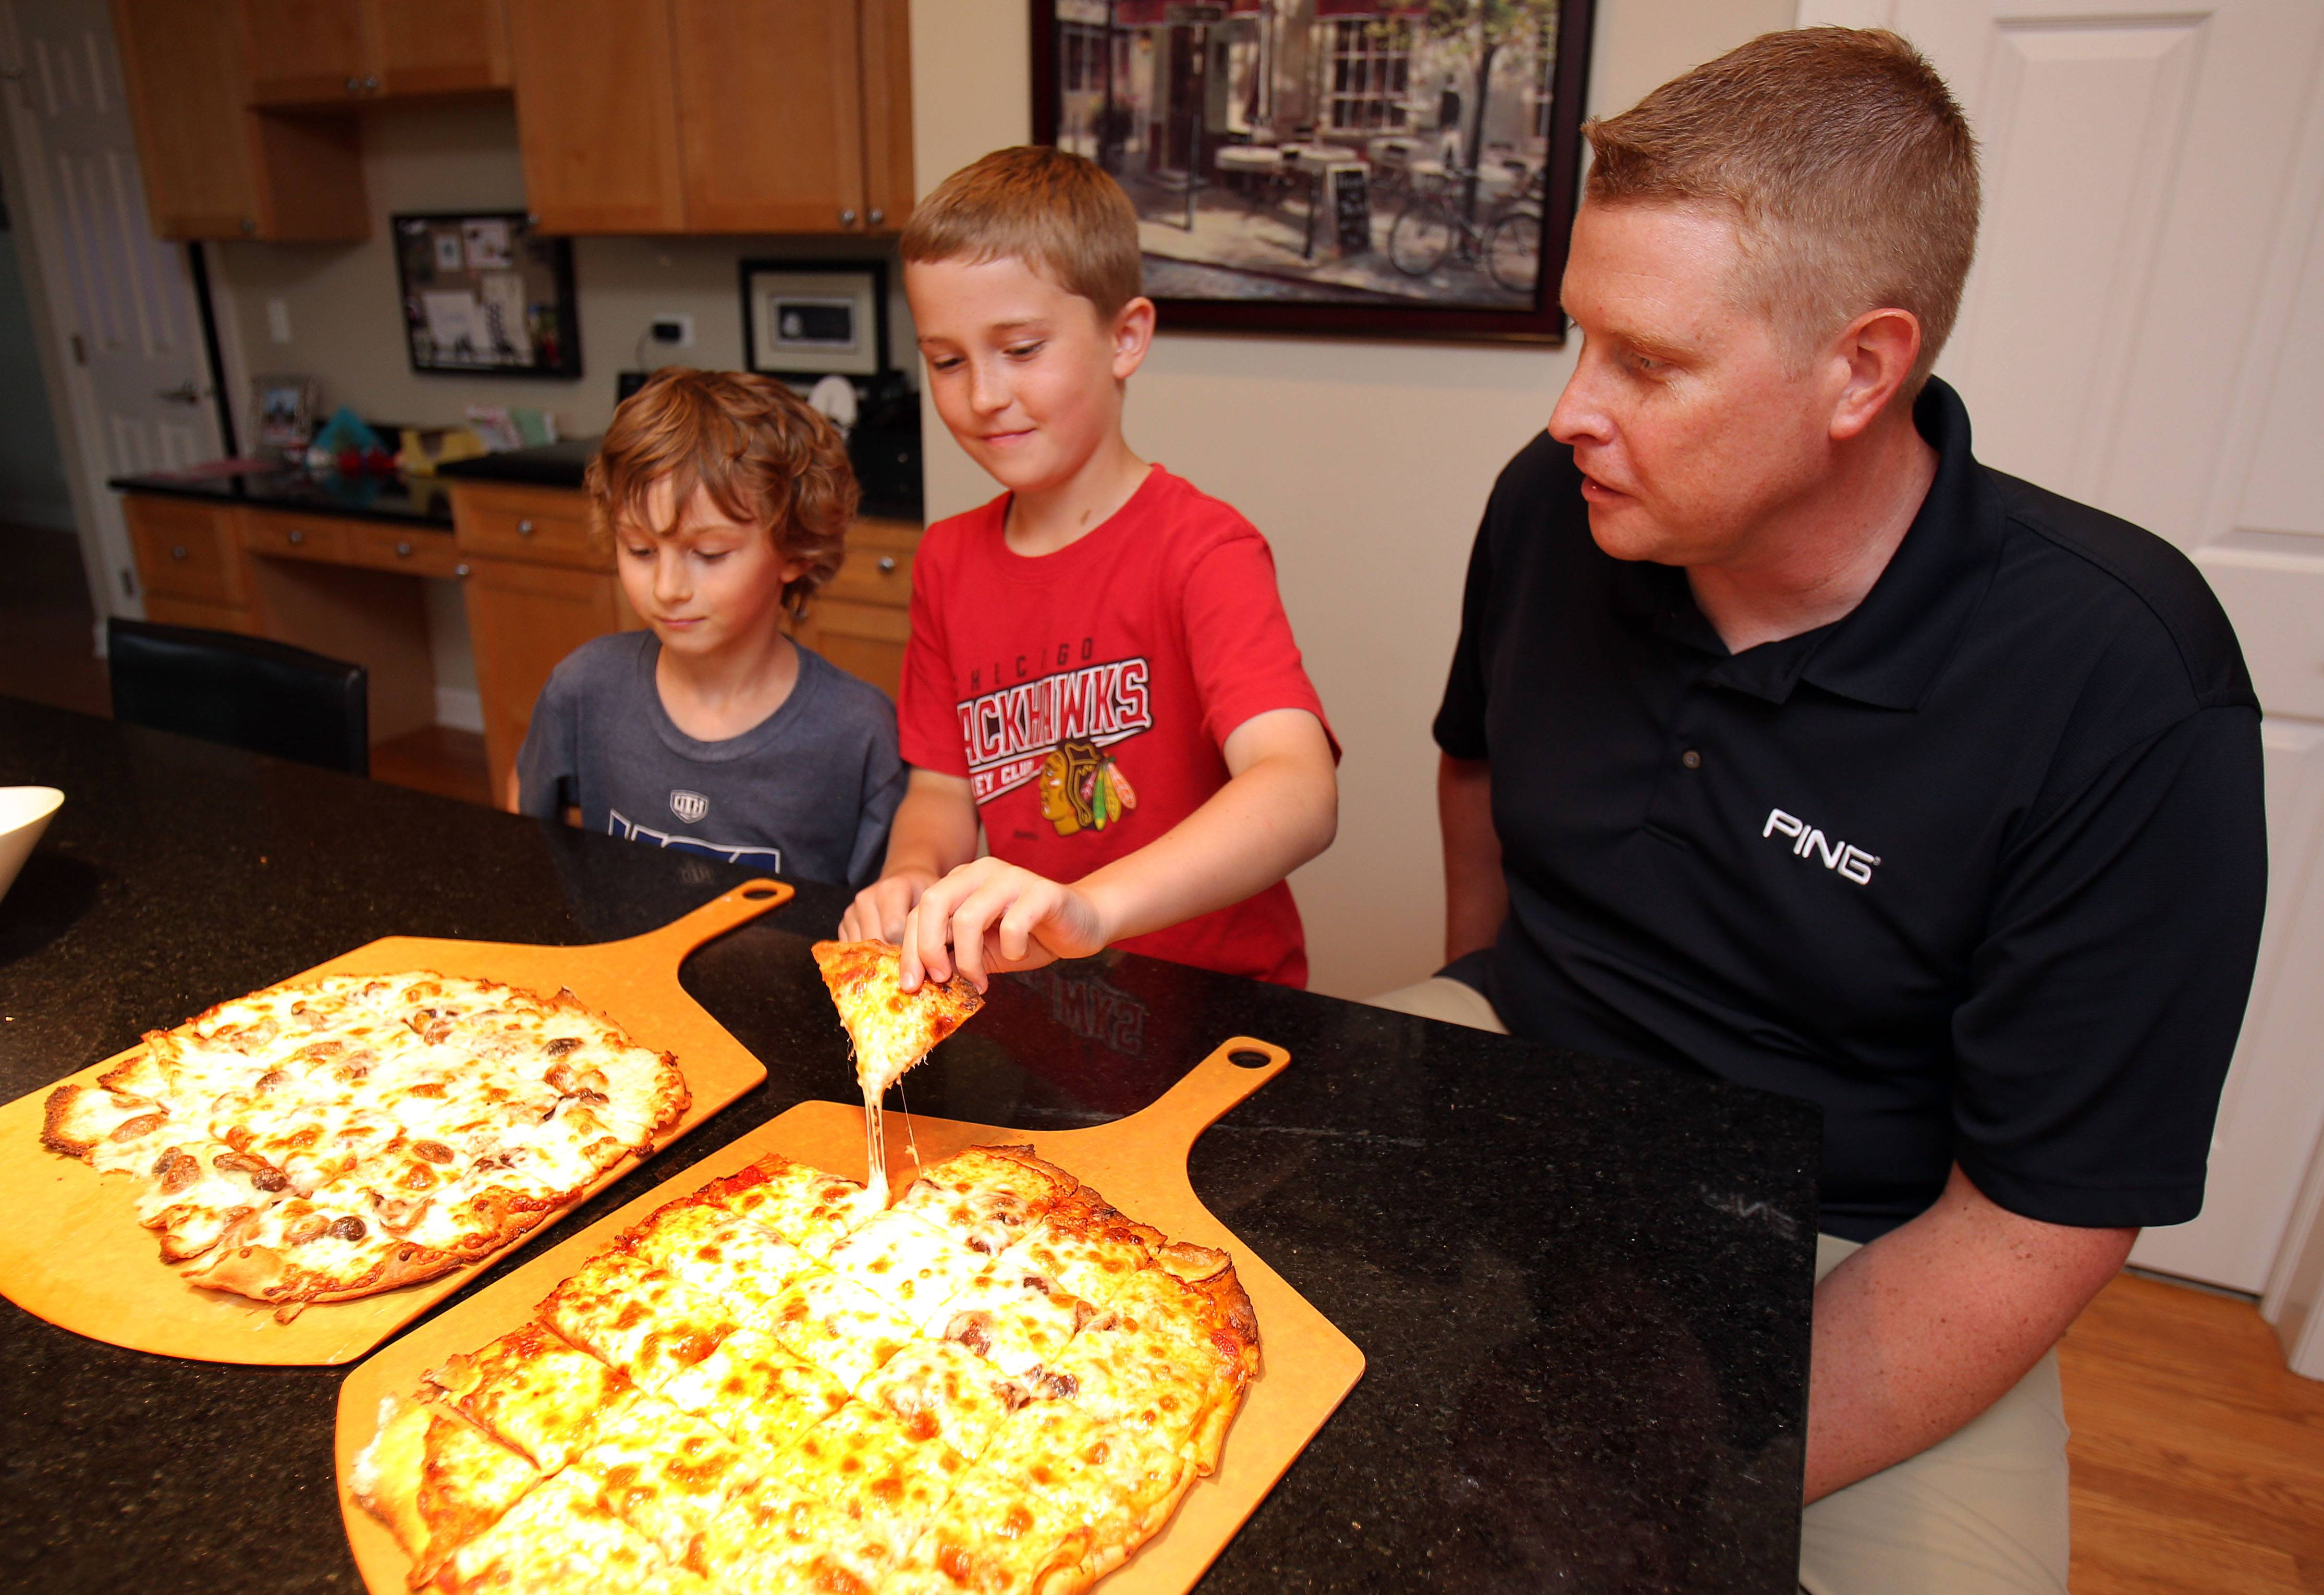 Shawn Schatteman, right, enjoys homemade pizza with his son, Blake, and neighbor Will Bosholdat. Schatteman makes his pizza dough from scratch.